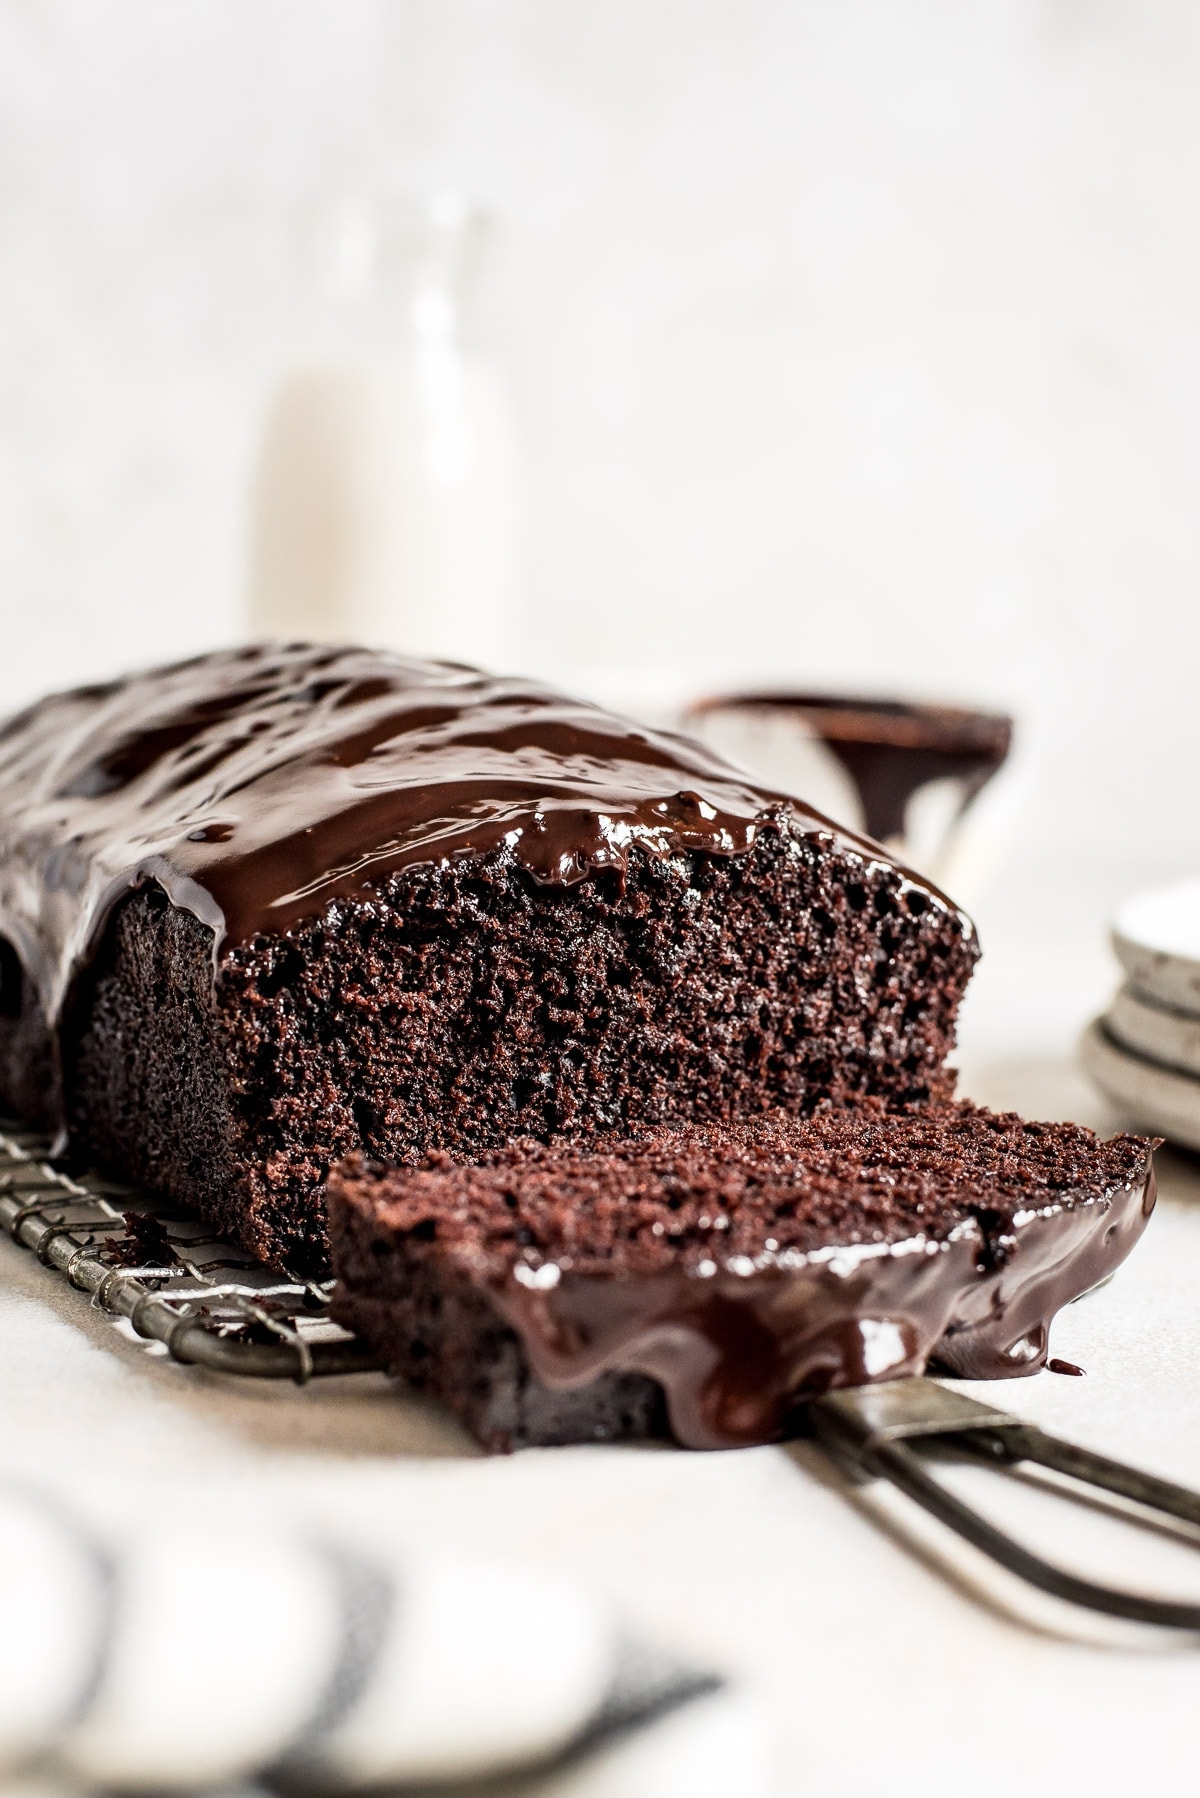 close up inside of chocolate cake